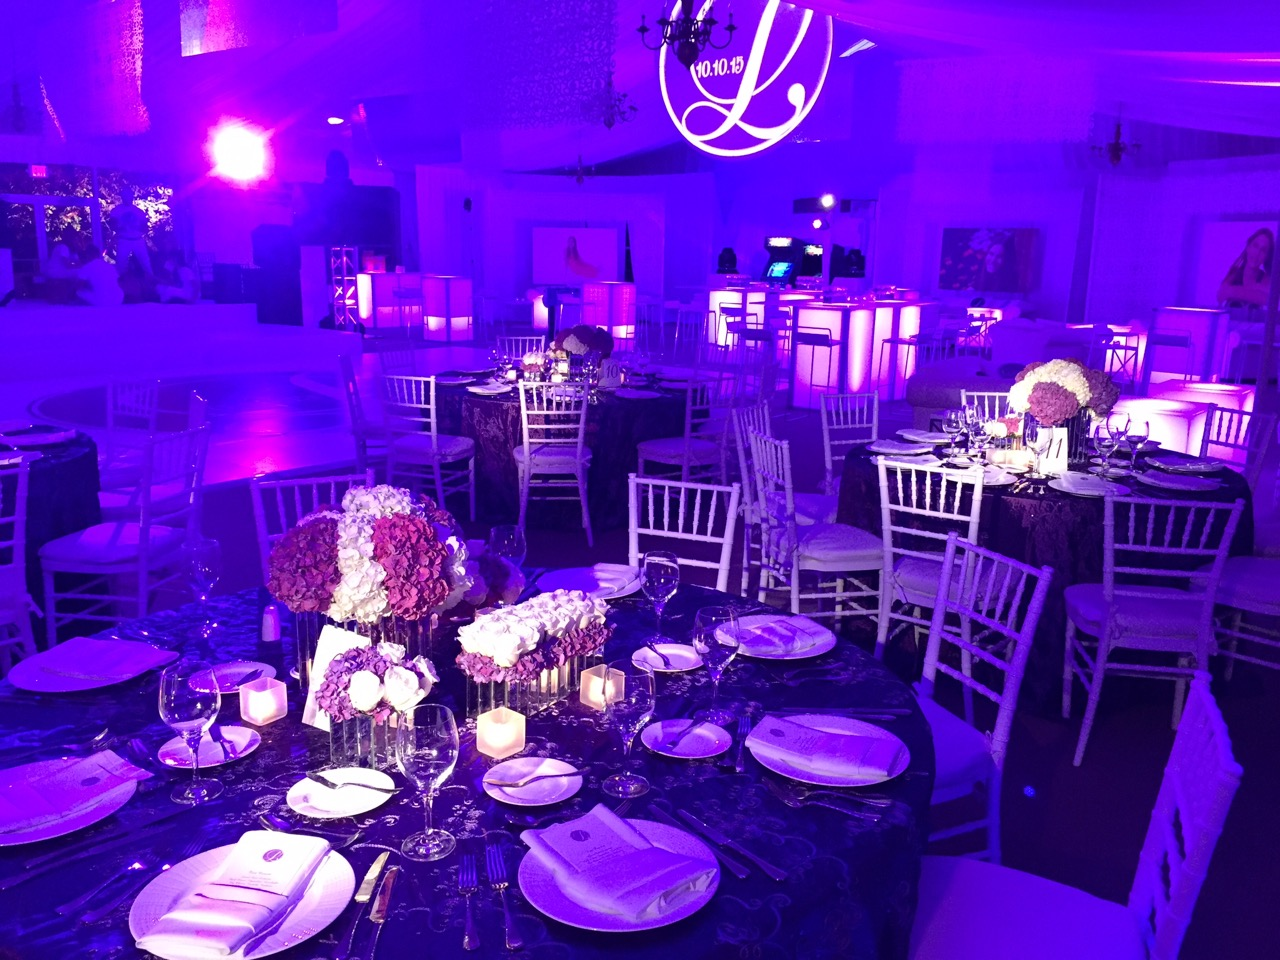 Eggsotic Events NJ Event Design Lighting Decor Rental  - 22.jpg